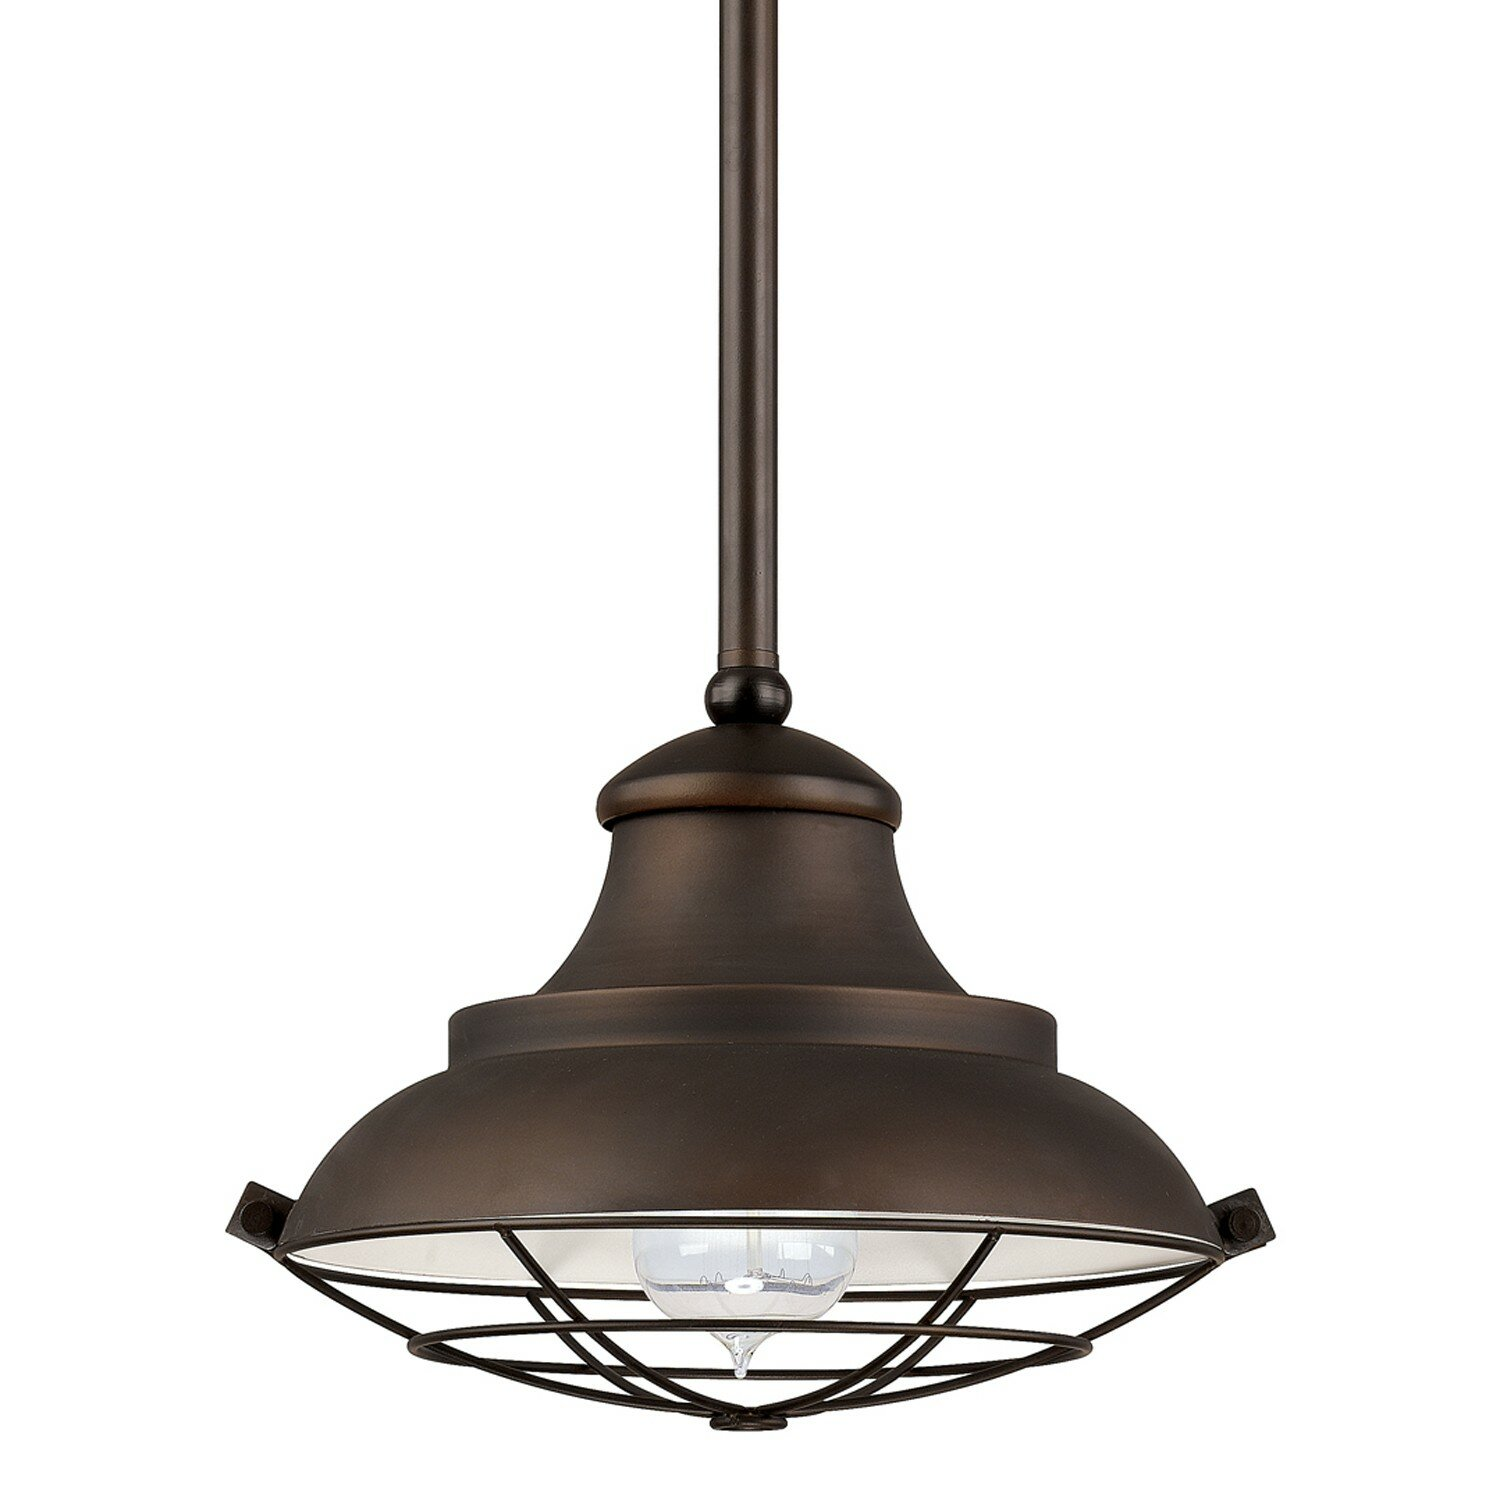 Wayfair Lights: Capital Lighting 1 Light Mini Pendant & Reviews